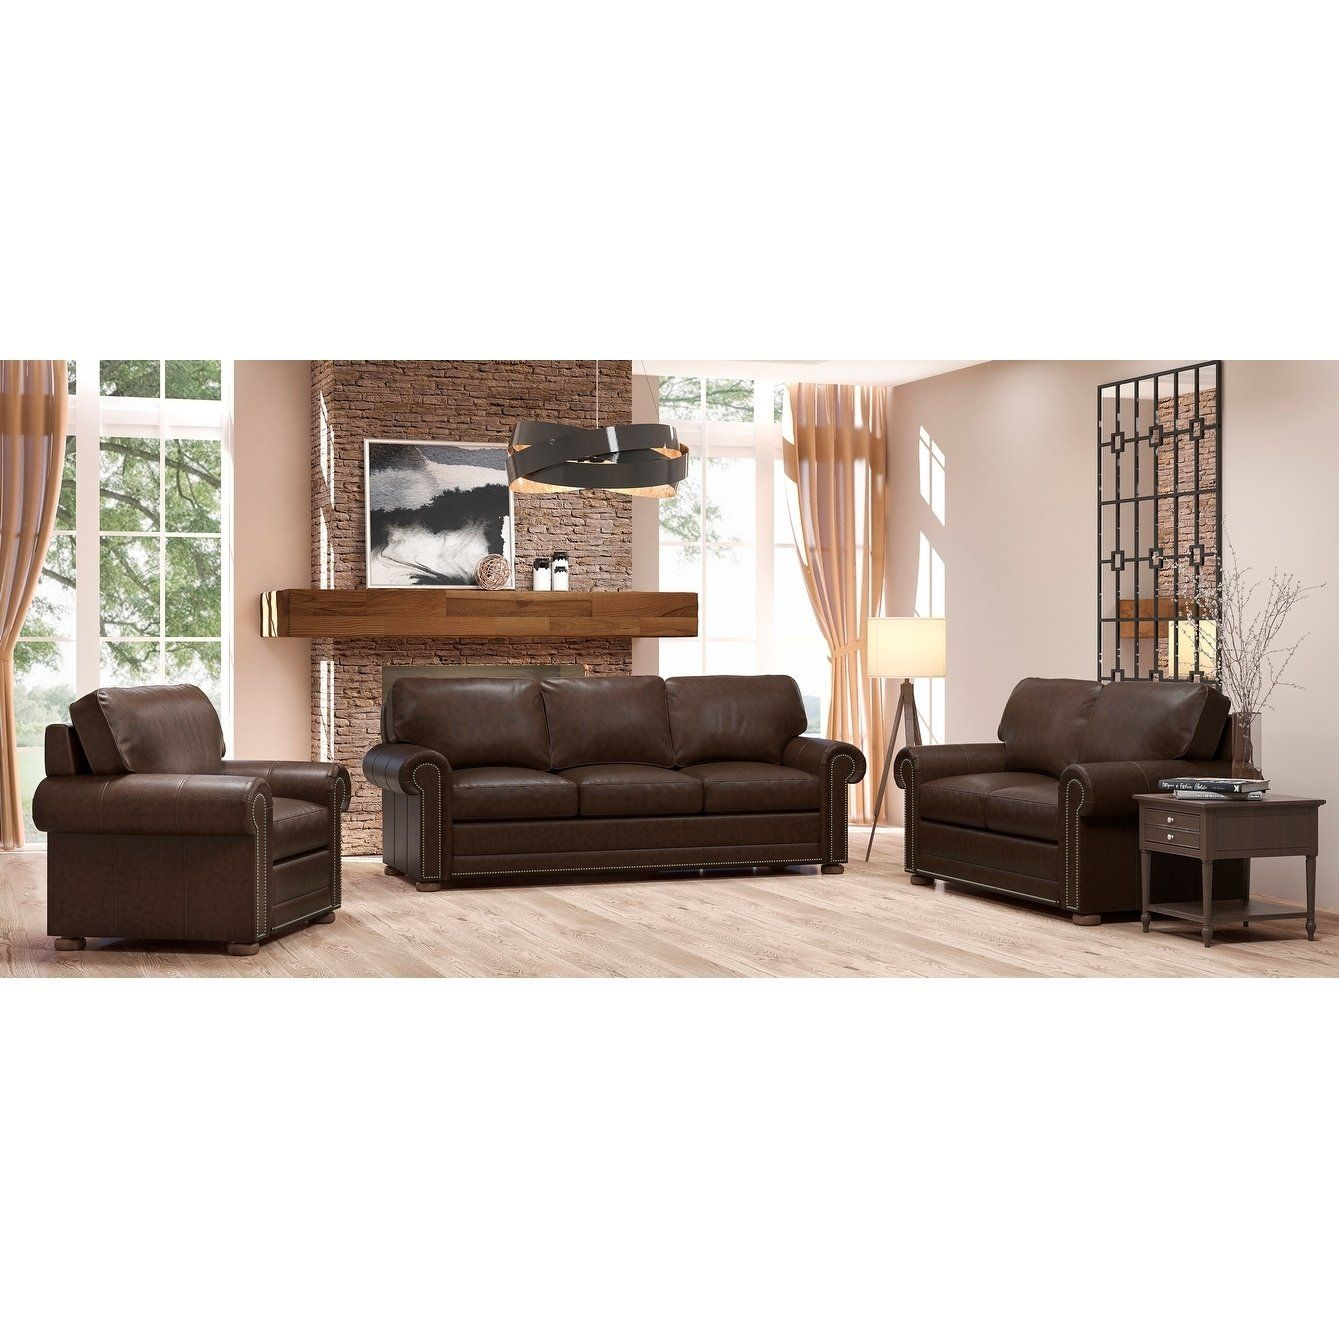 Online Shopping Bedding Furniture Electronics Jewelry Clothing More Living Room Sets Leather Living Room Set Chesterfield Living Room